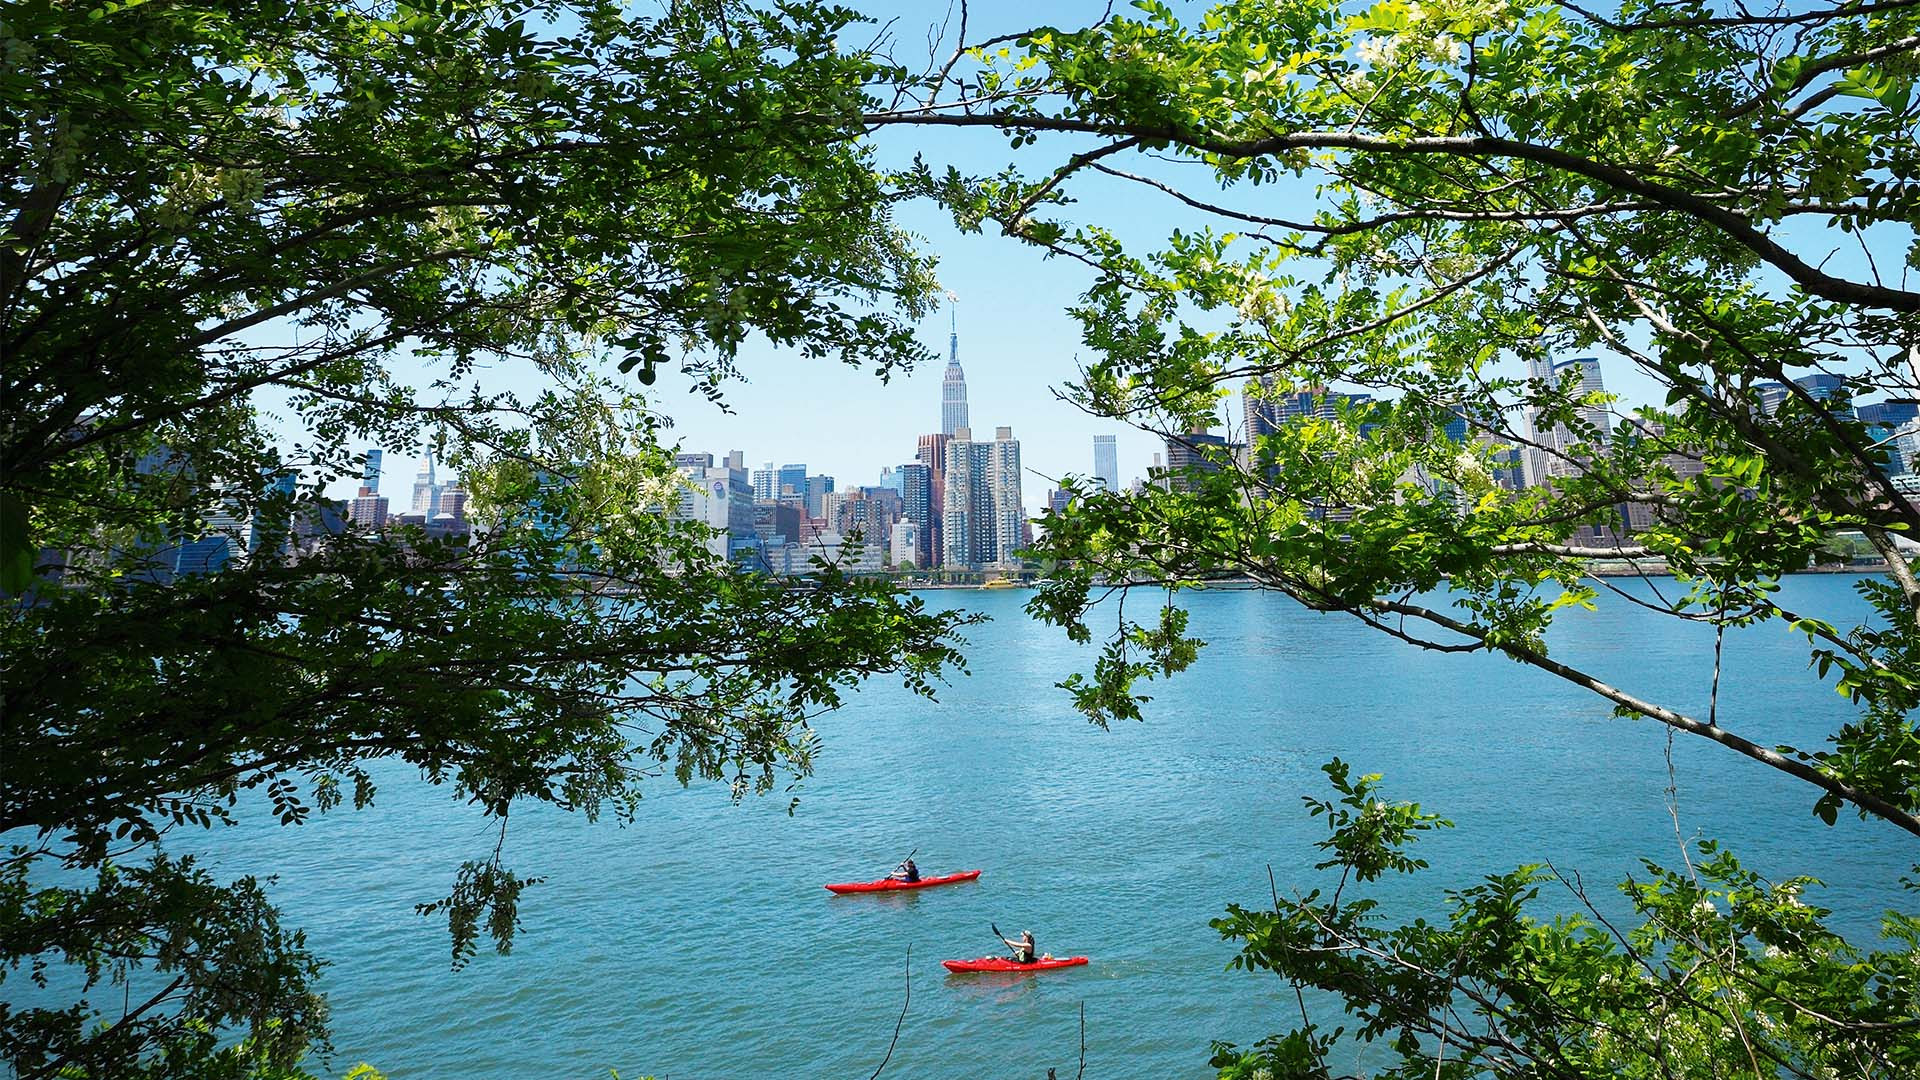 Kayakers and manhattan seen through trees